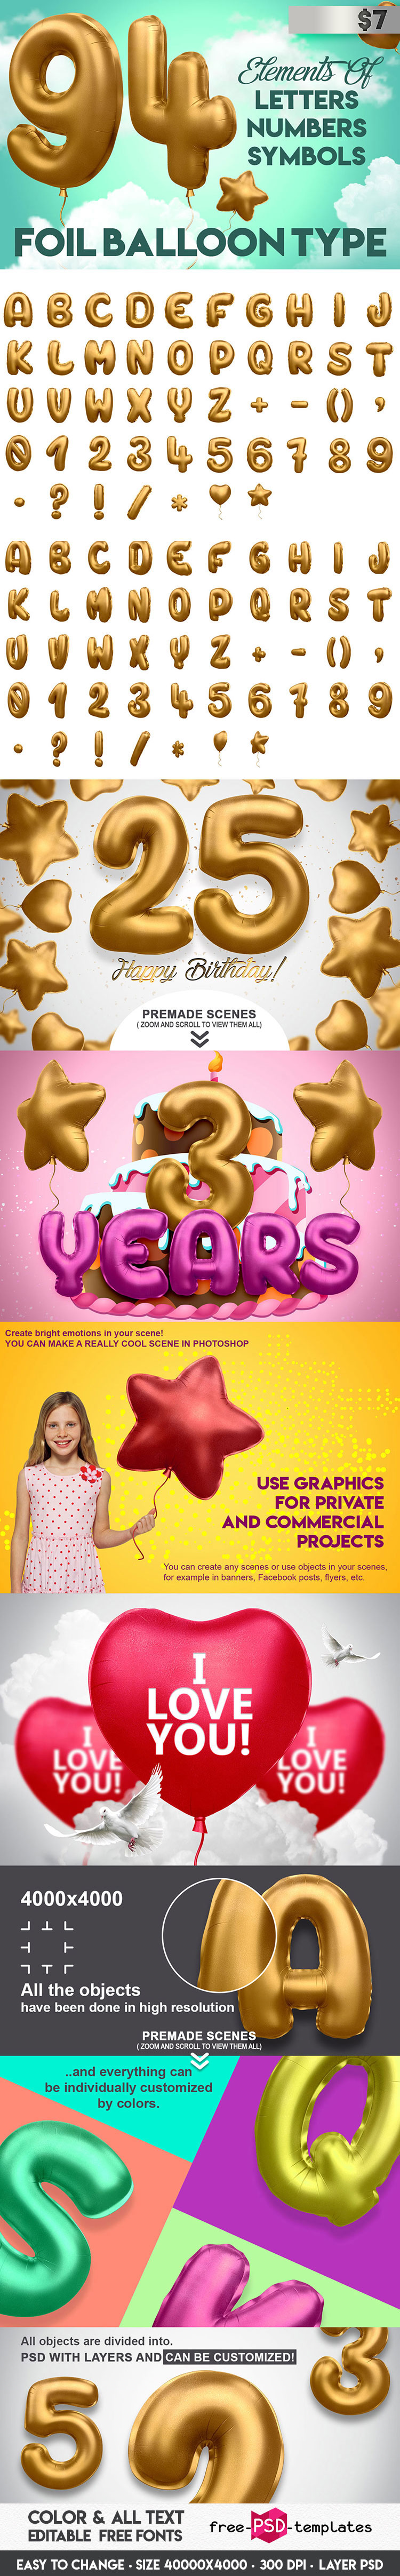 3D Alphabet Foil Balloon in PSD | Free PSD Templates